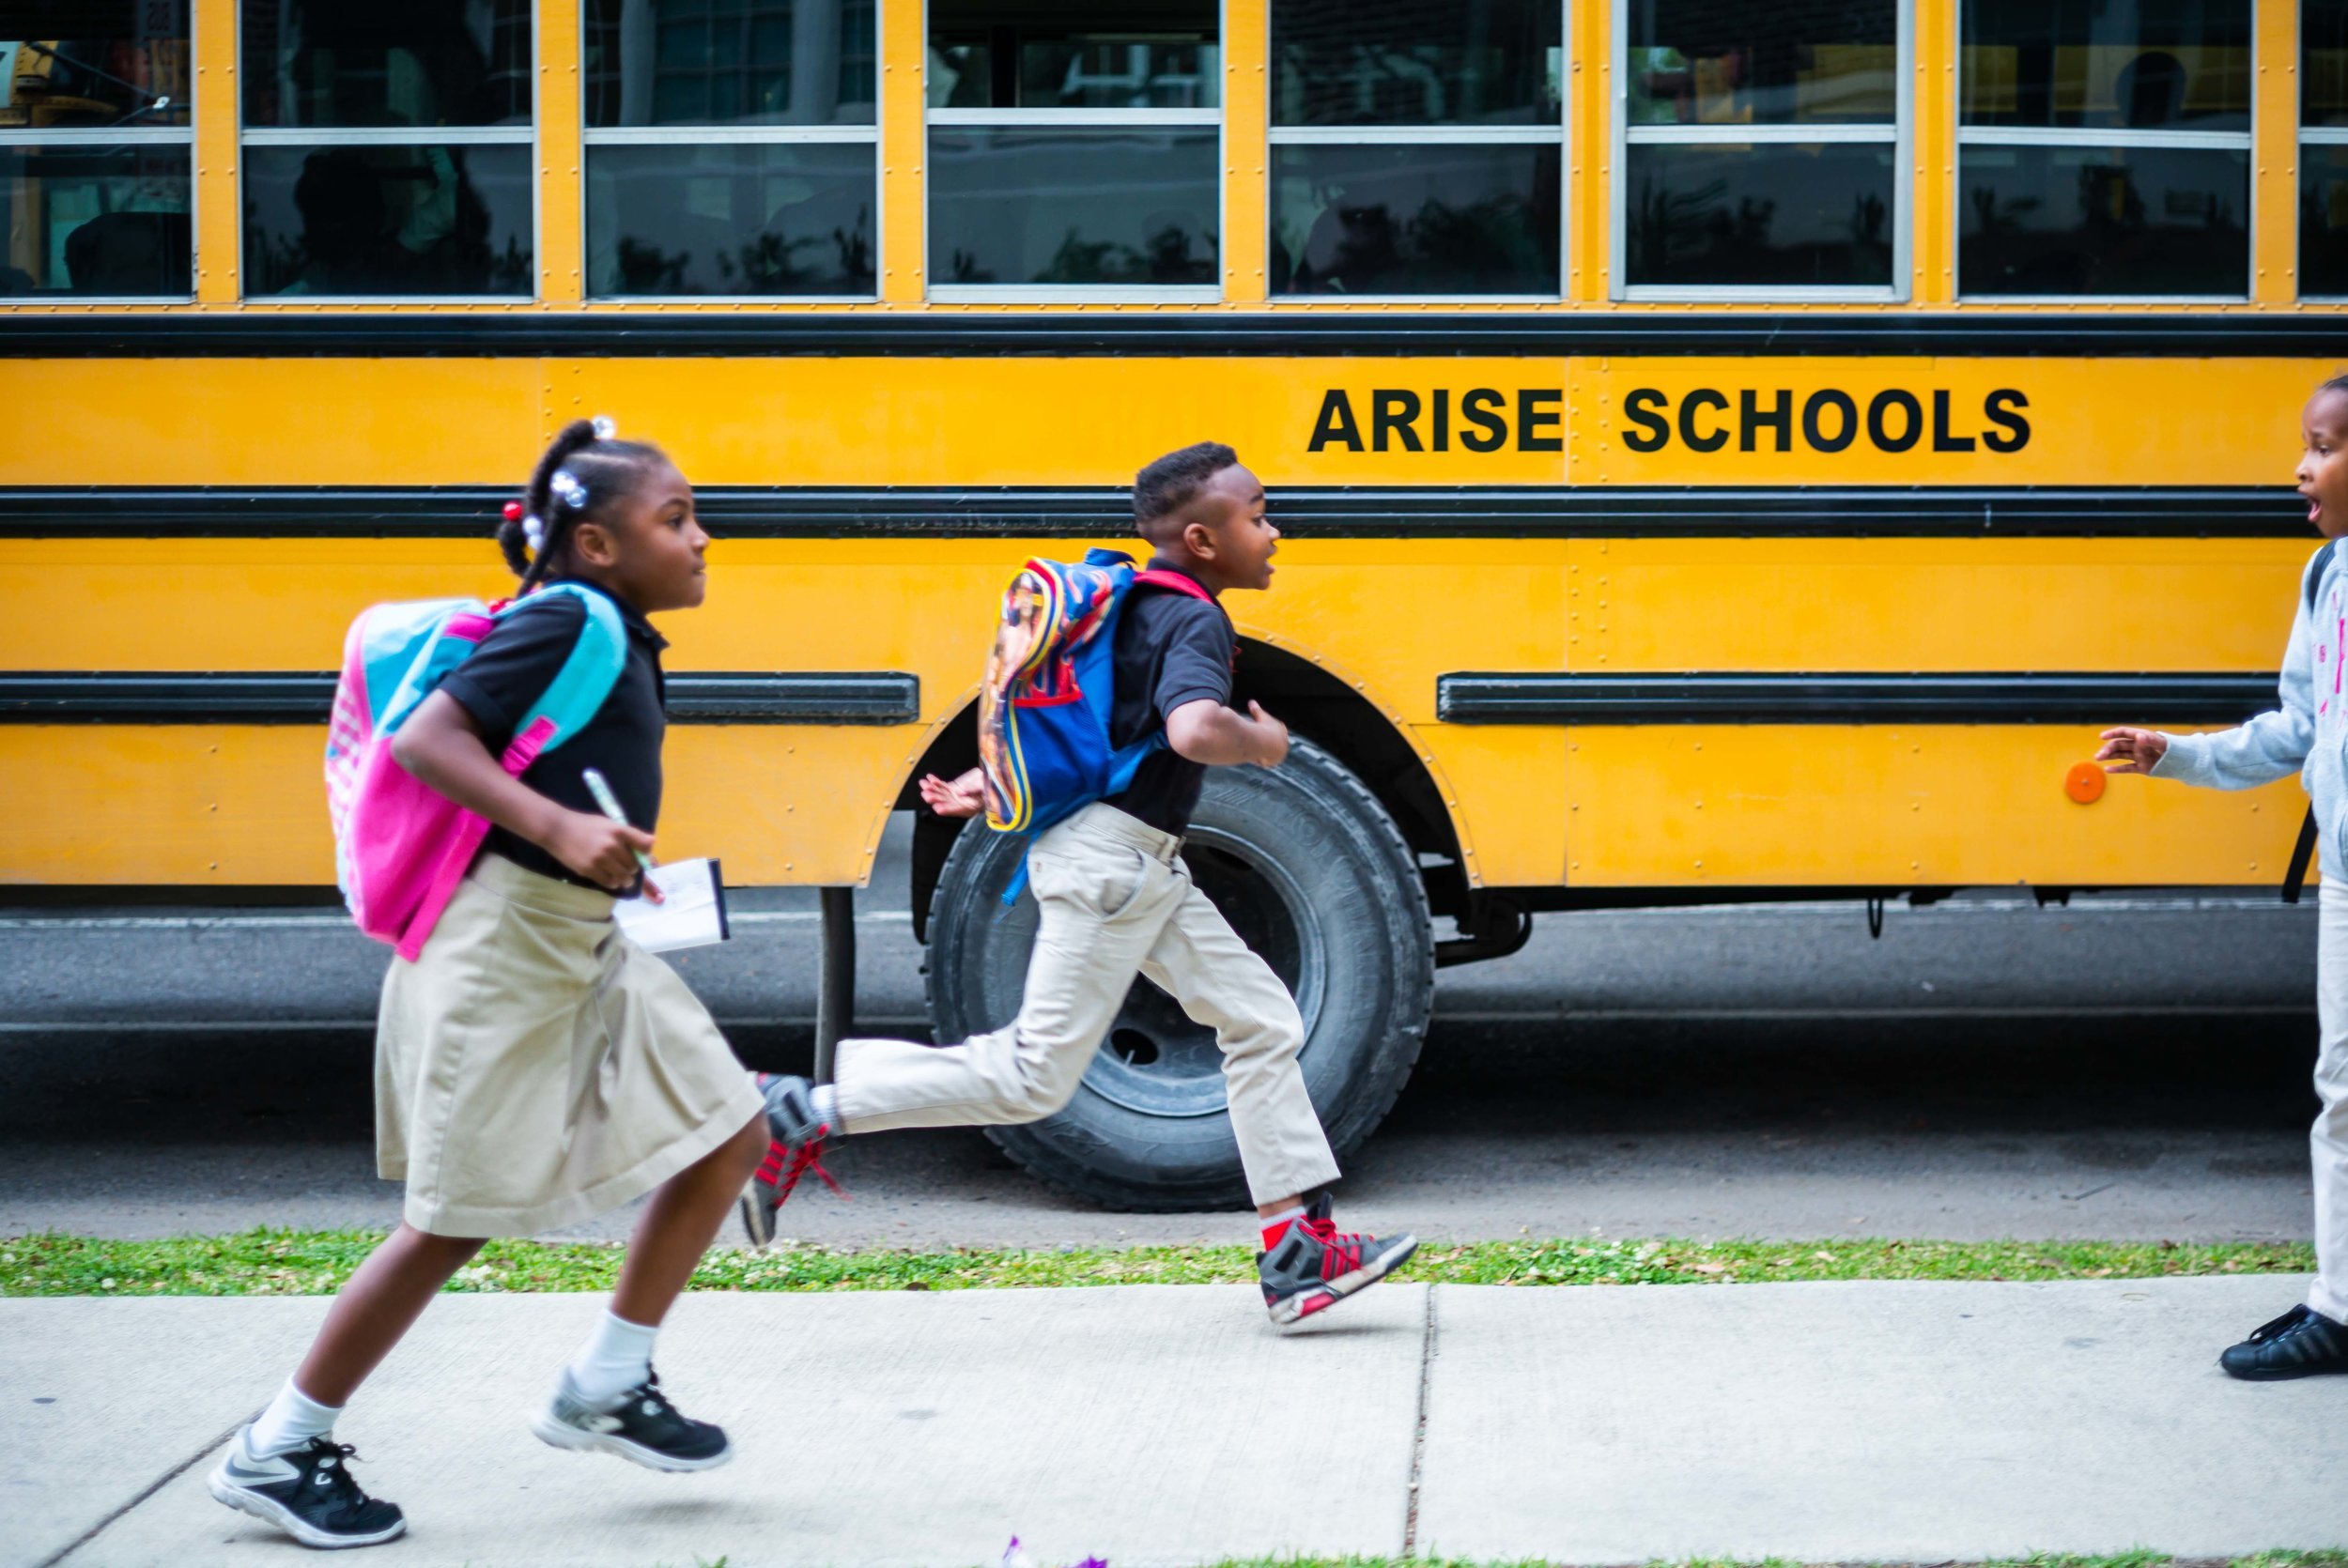 Arise Academy, New Orleans